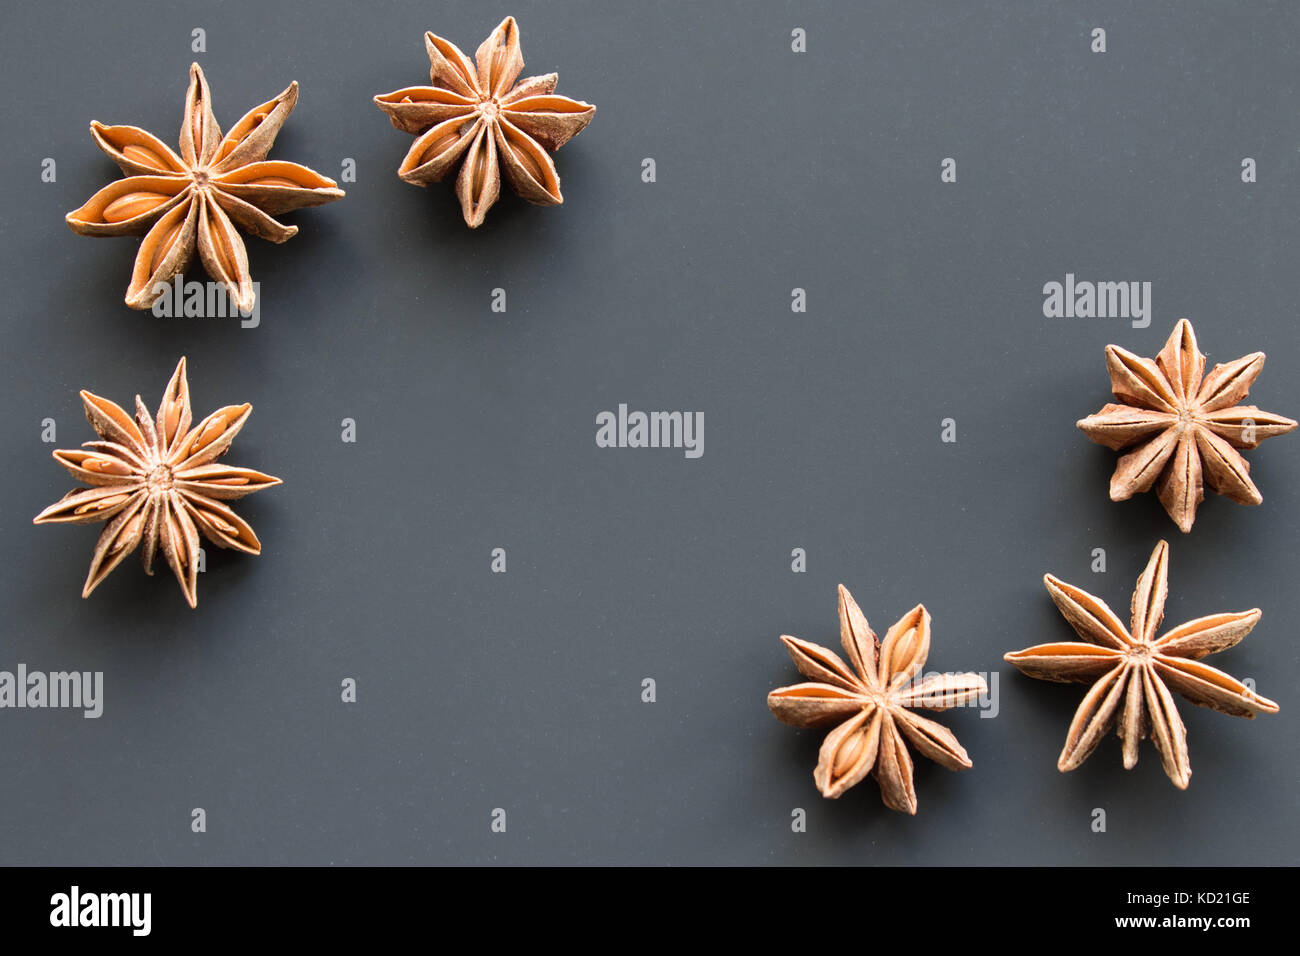 star anise on a black background. - Stock Image